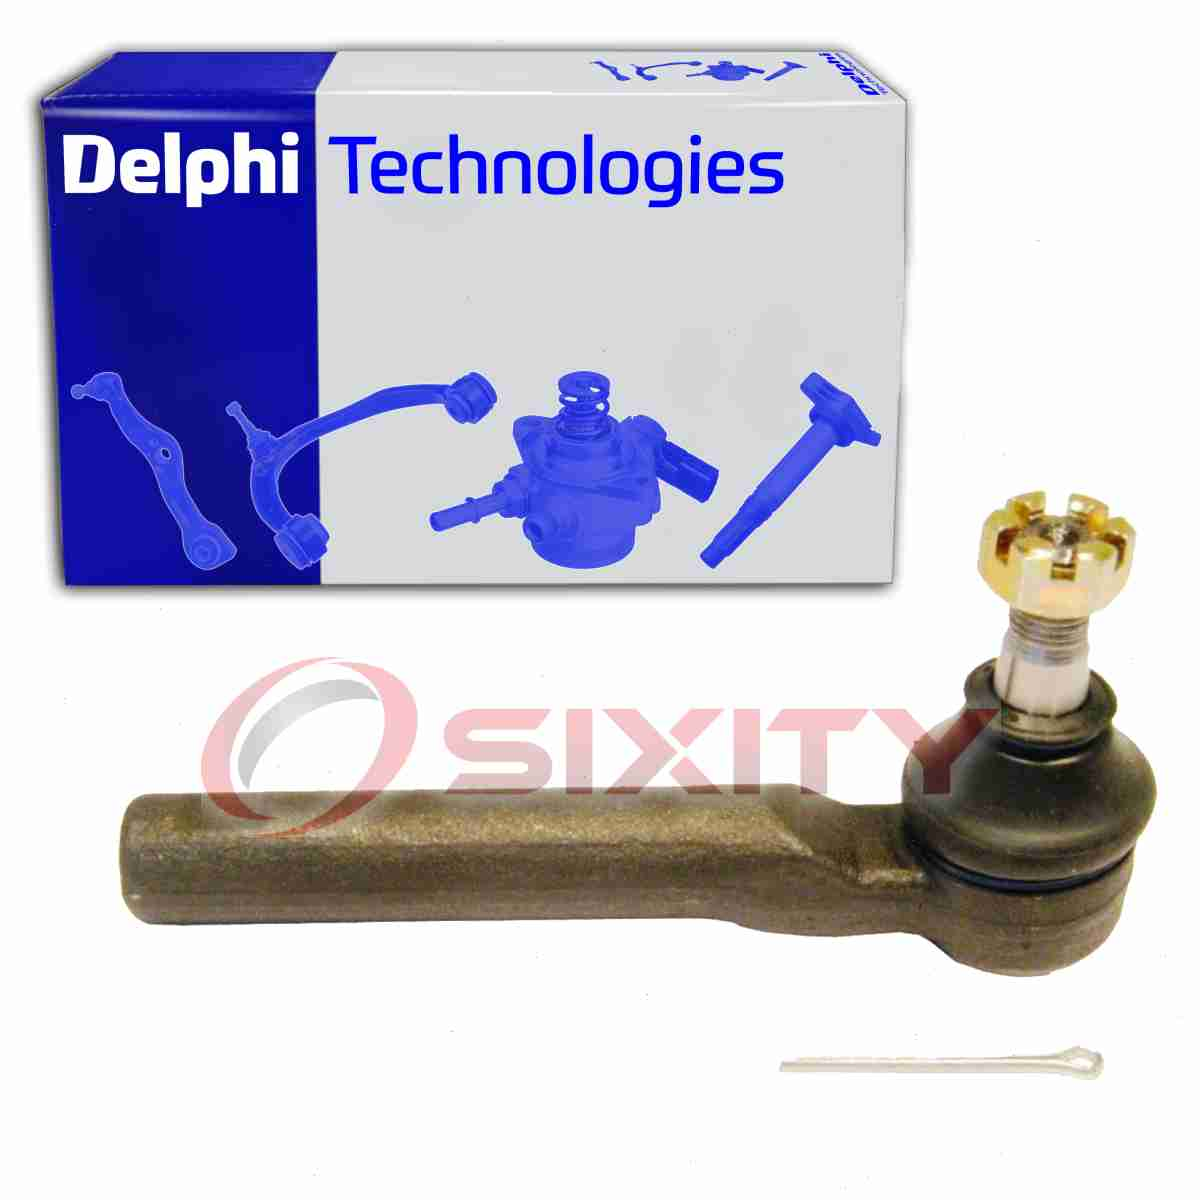 8c3989186c21 Details about Delphi Front Outer Steering Tie Rod End for 1998-2015 Subaru  Forester - po